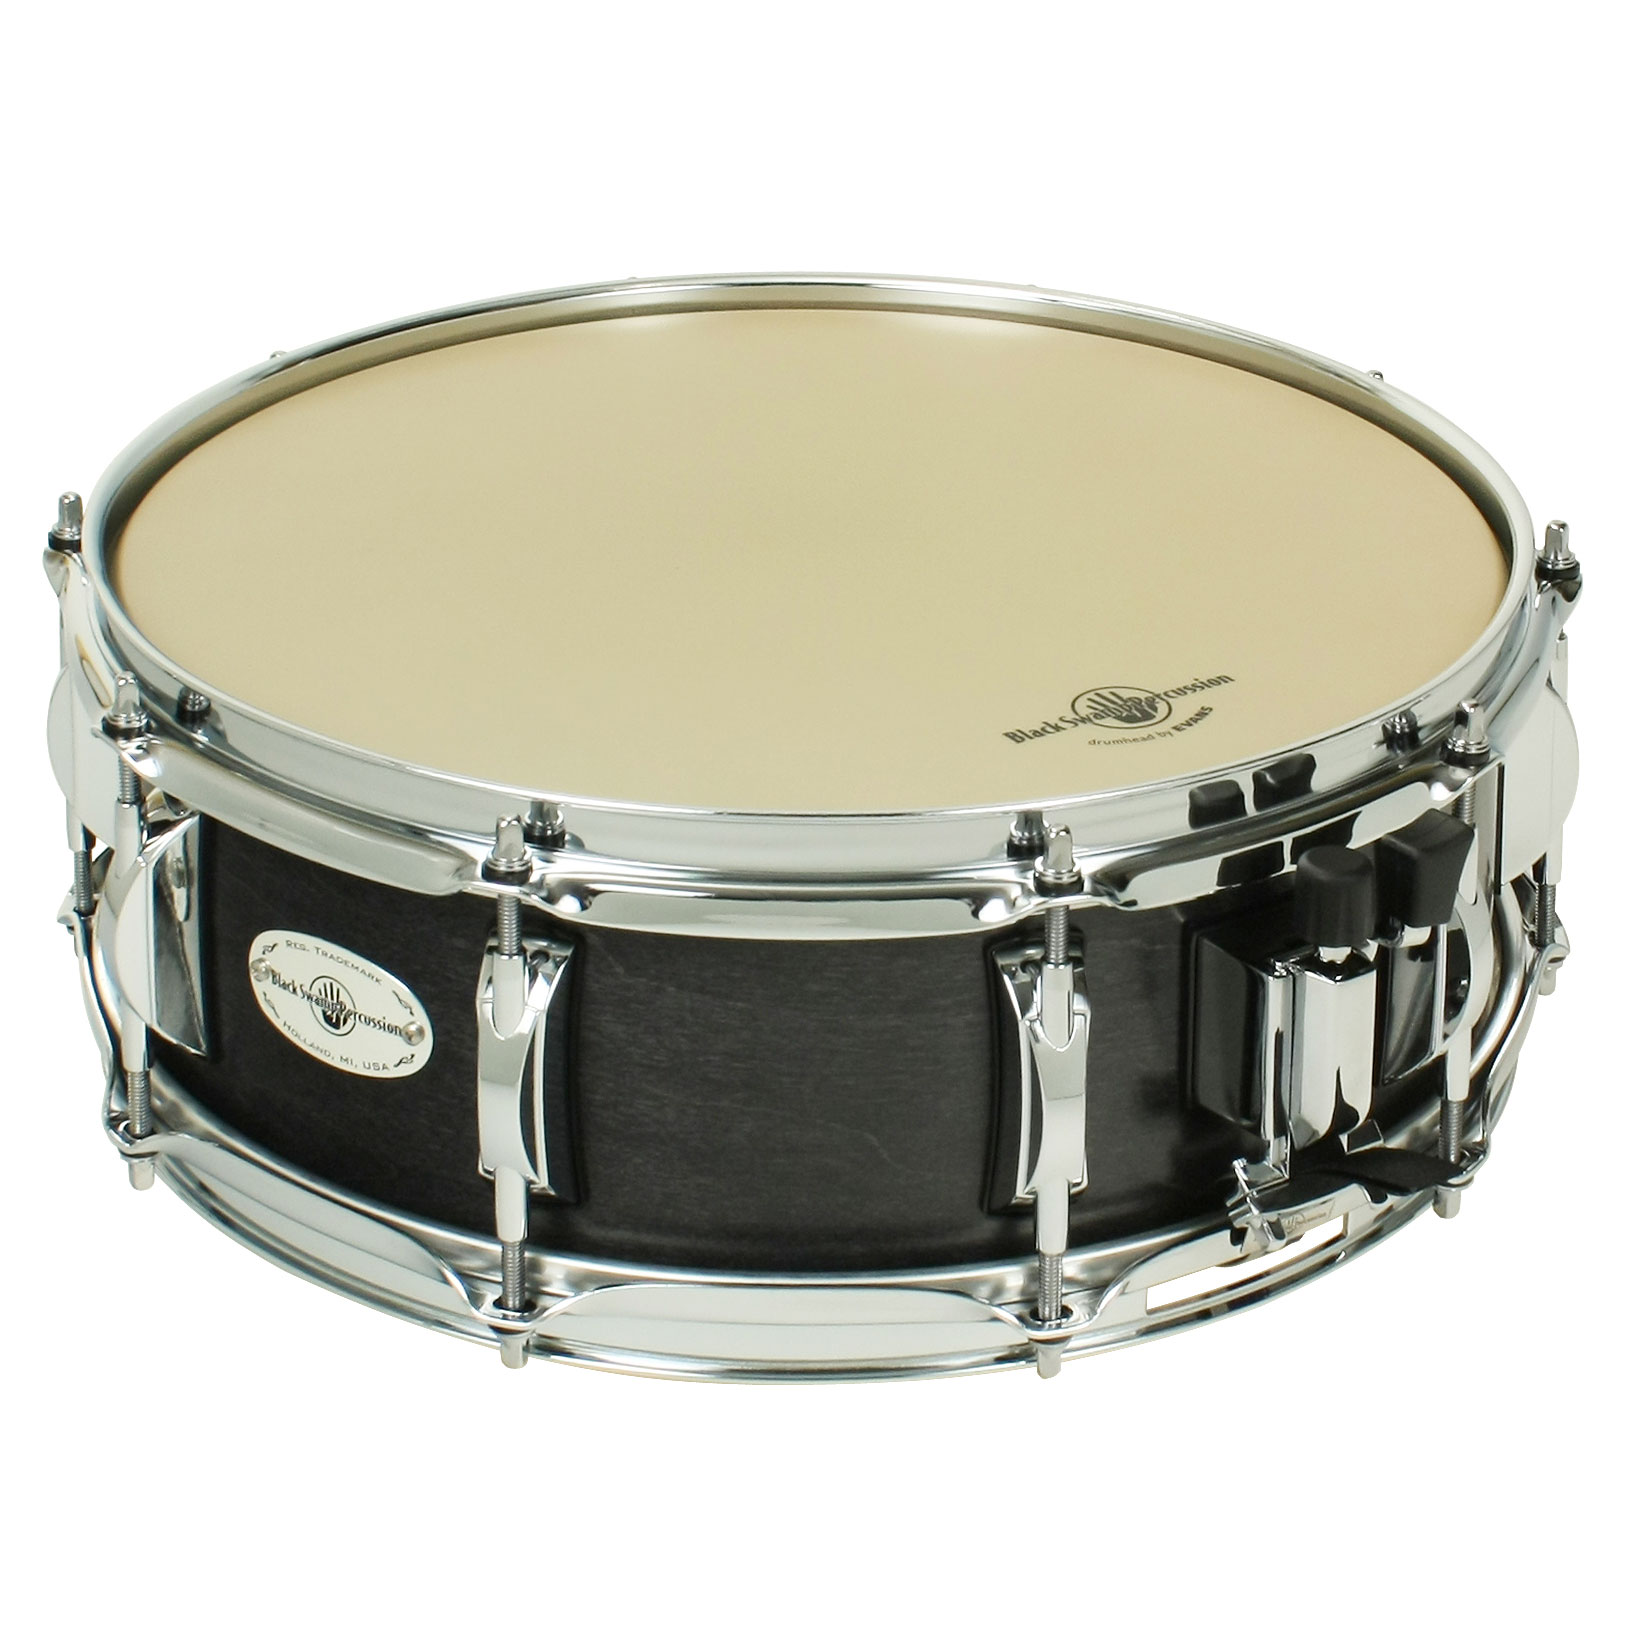 Concert Snare Drums, Pearl, Black Swamp | Lone Star Percussion